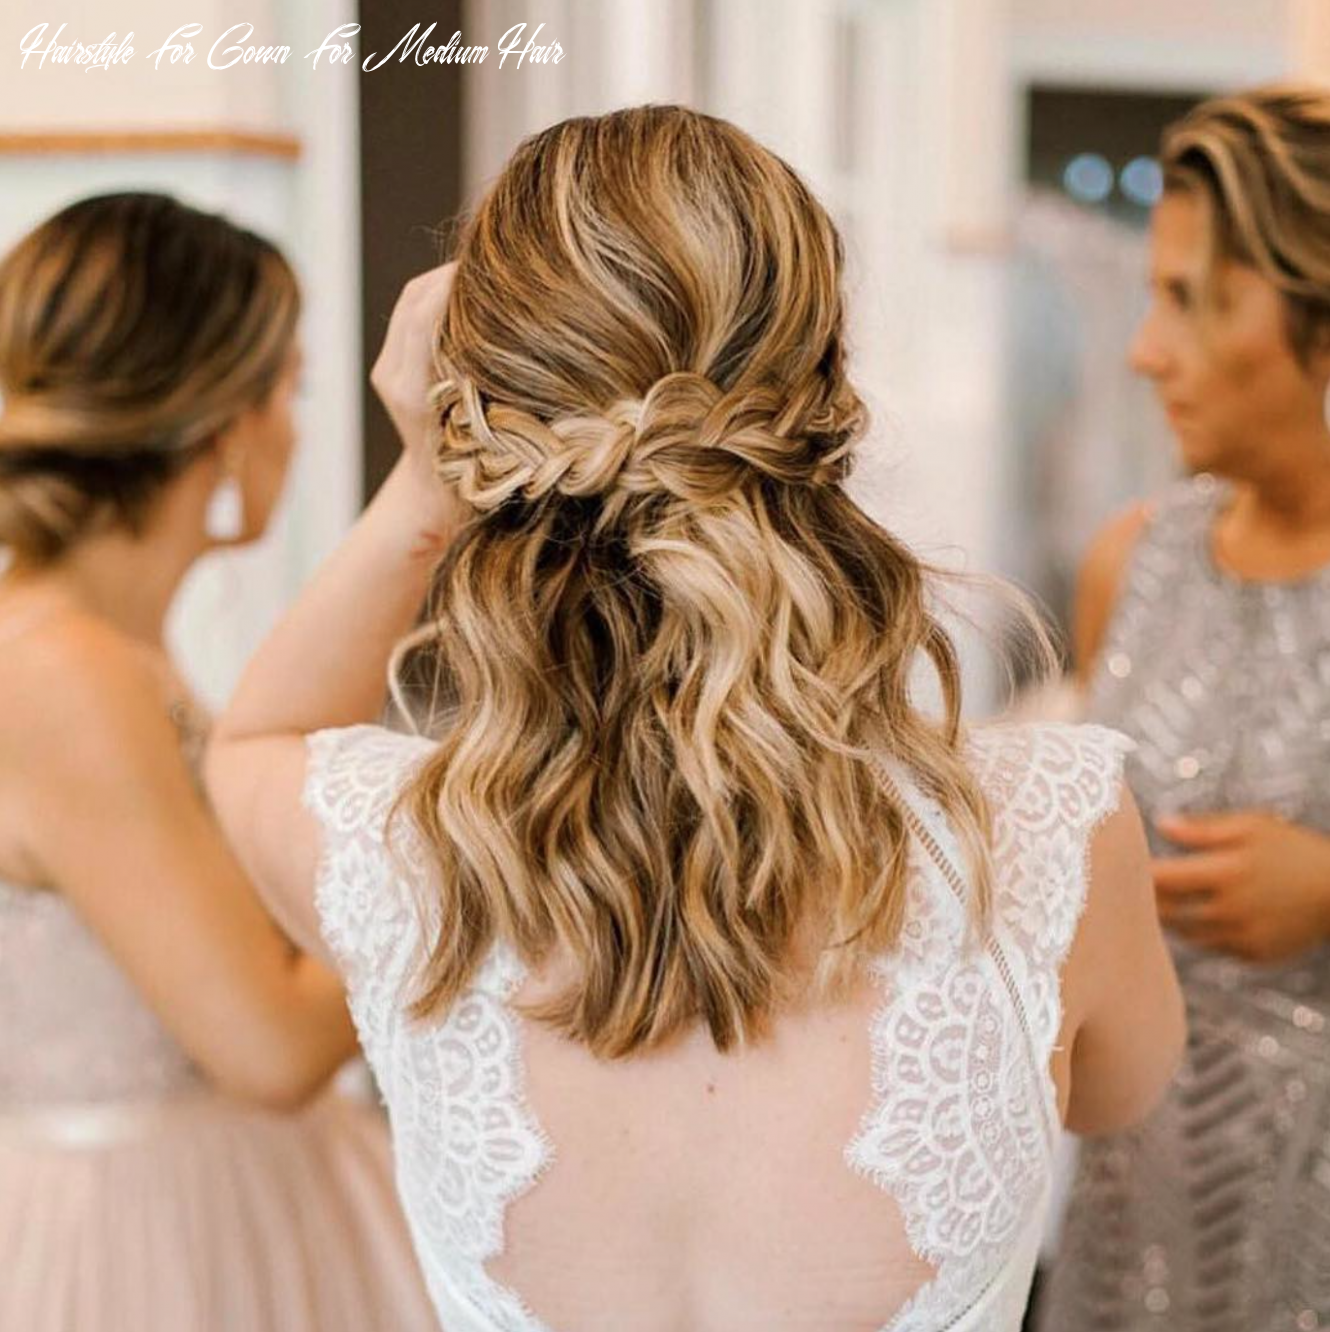 Catherine deane suri gown | wedding hairstyles for long hair